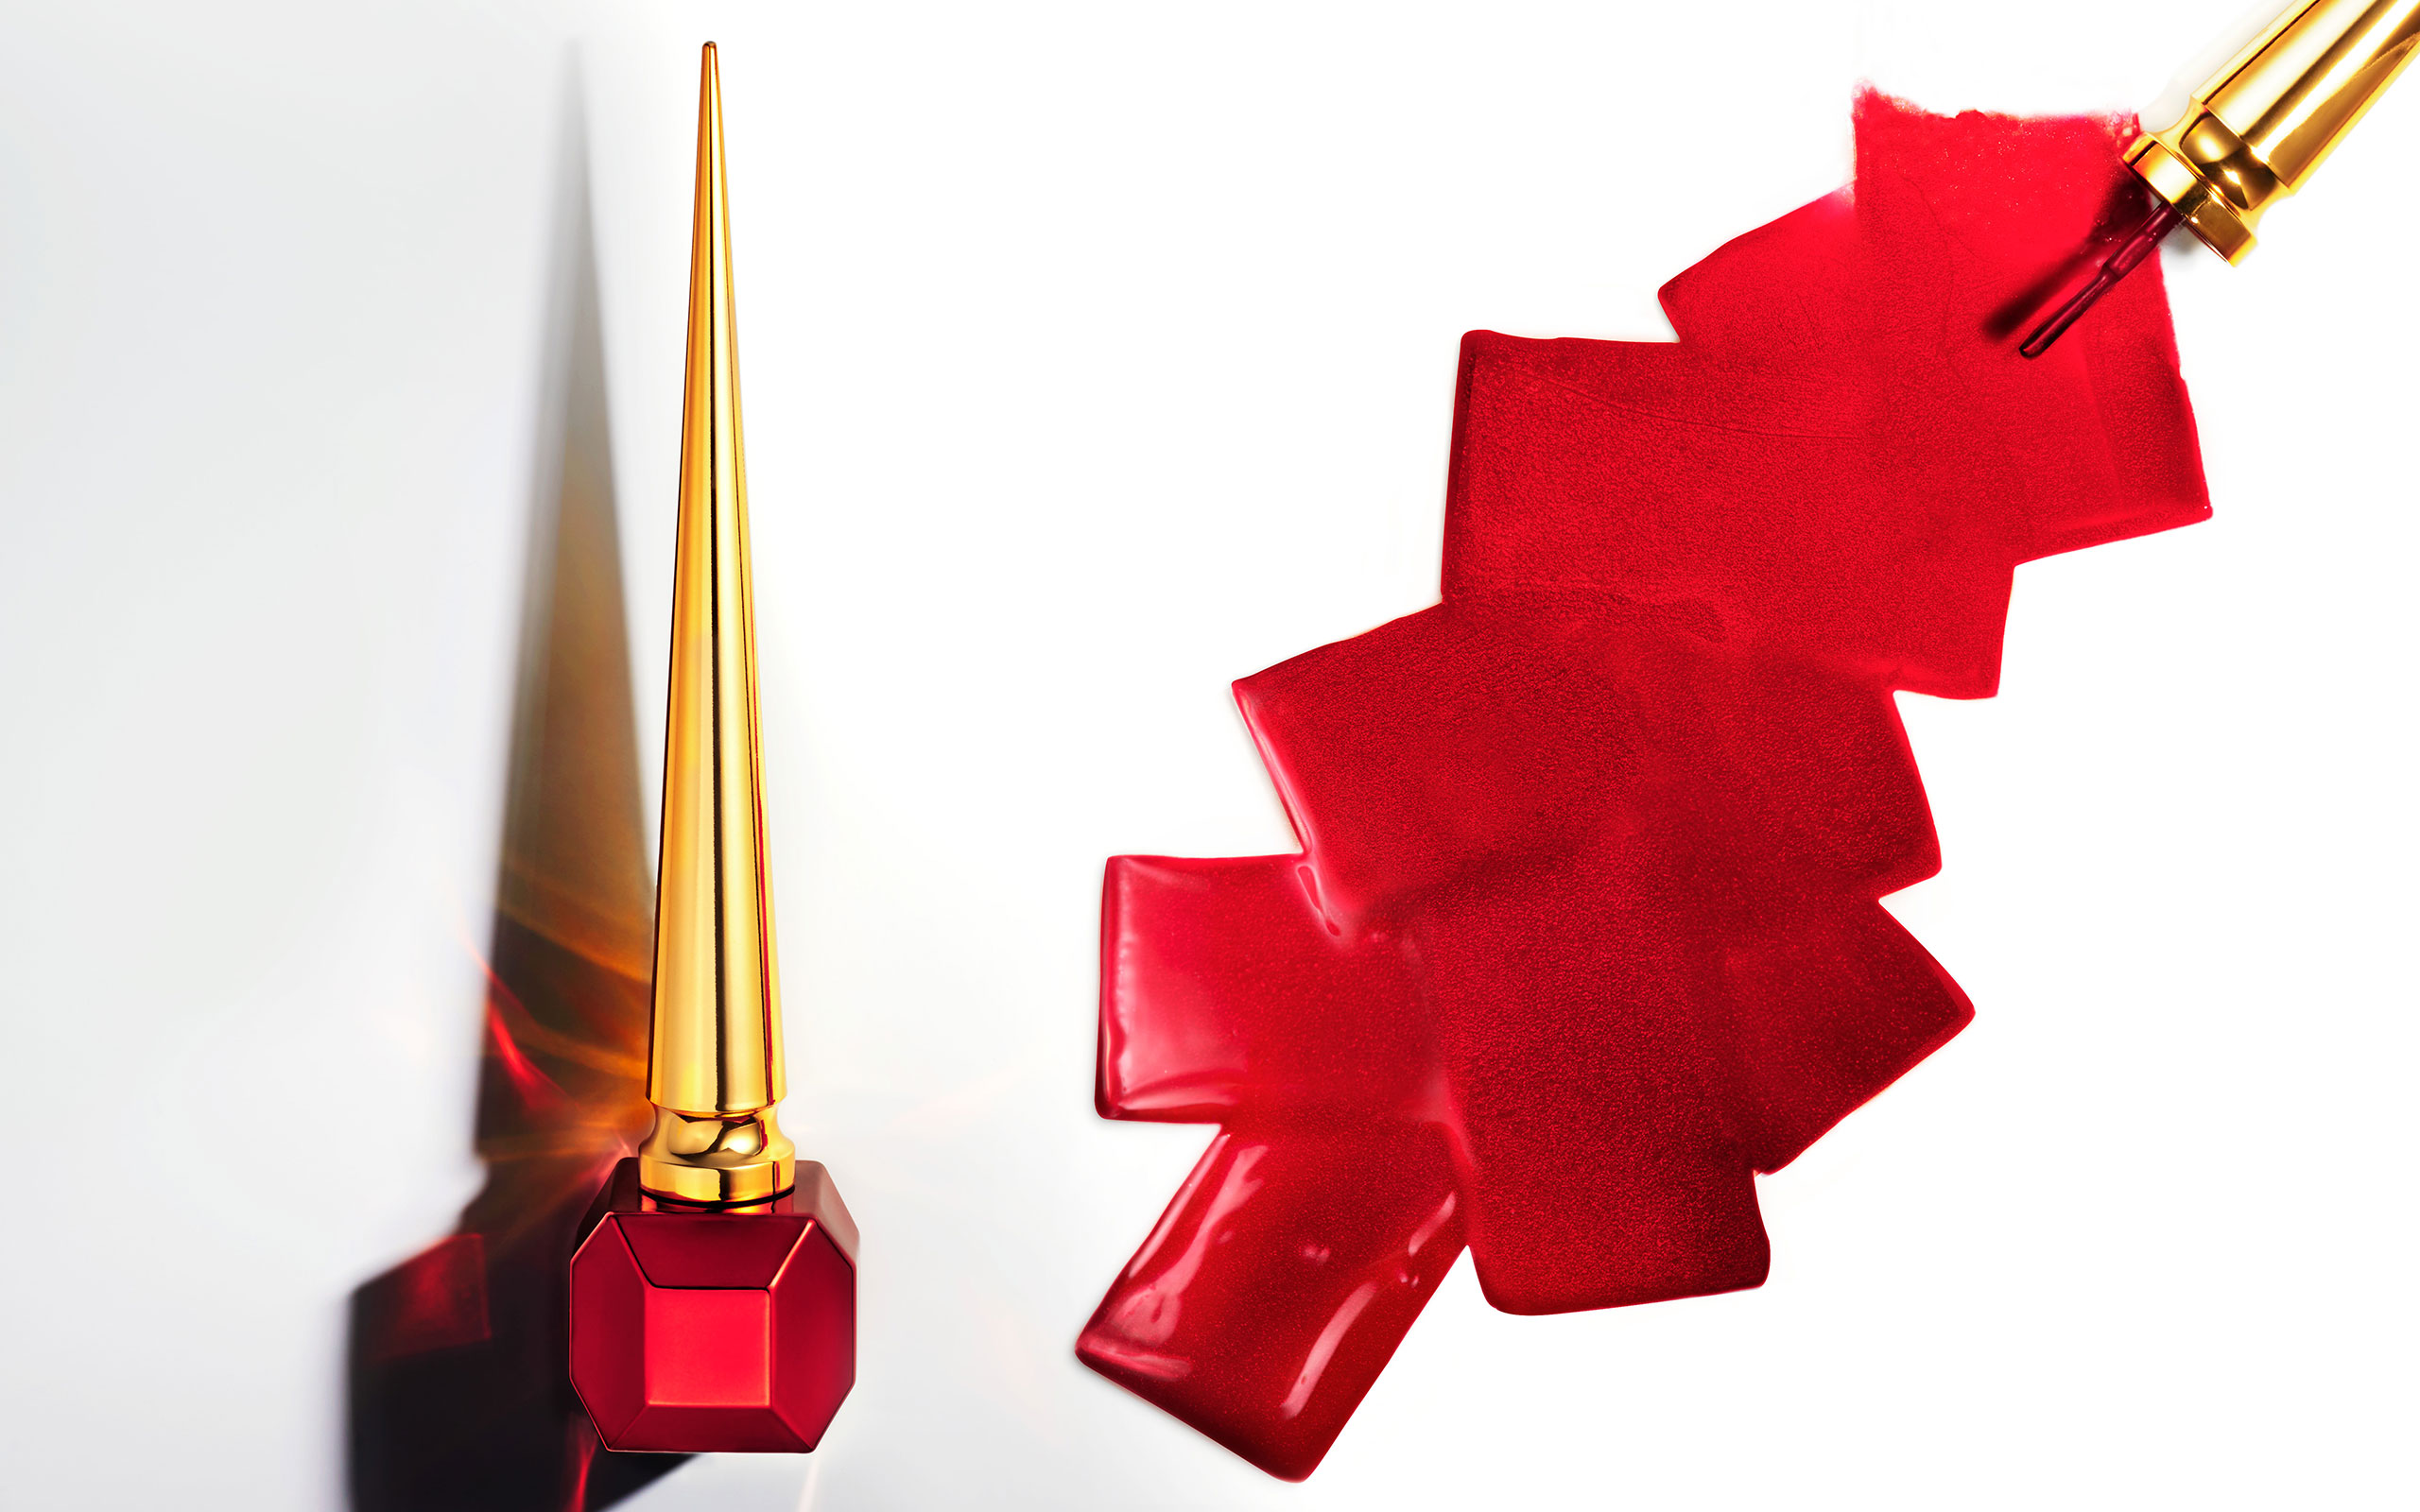 Christian Louboutin Launched Holiday Collection,And Opens New Store At Daimaru Shinsaibashi